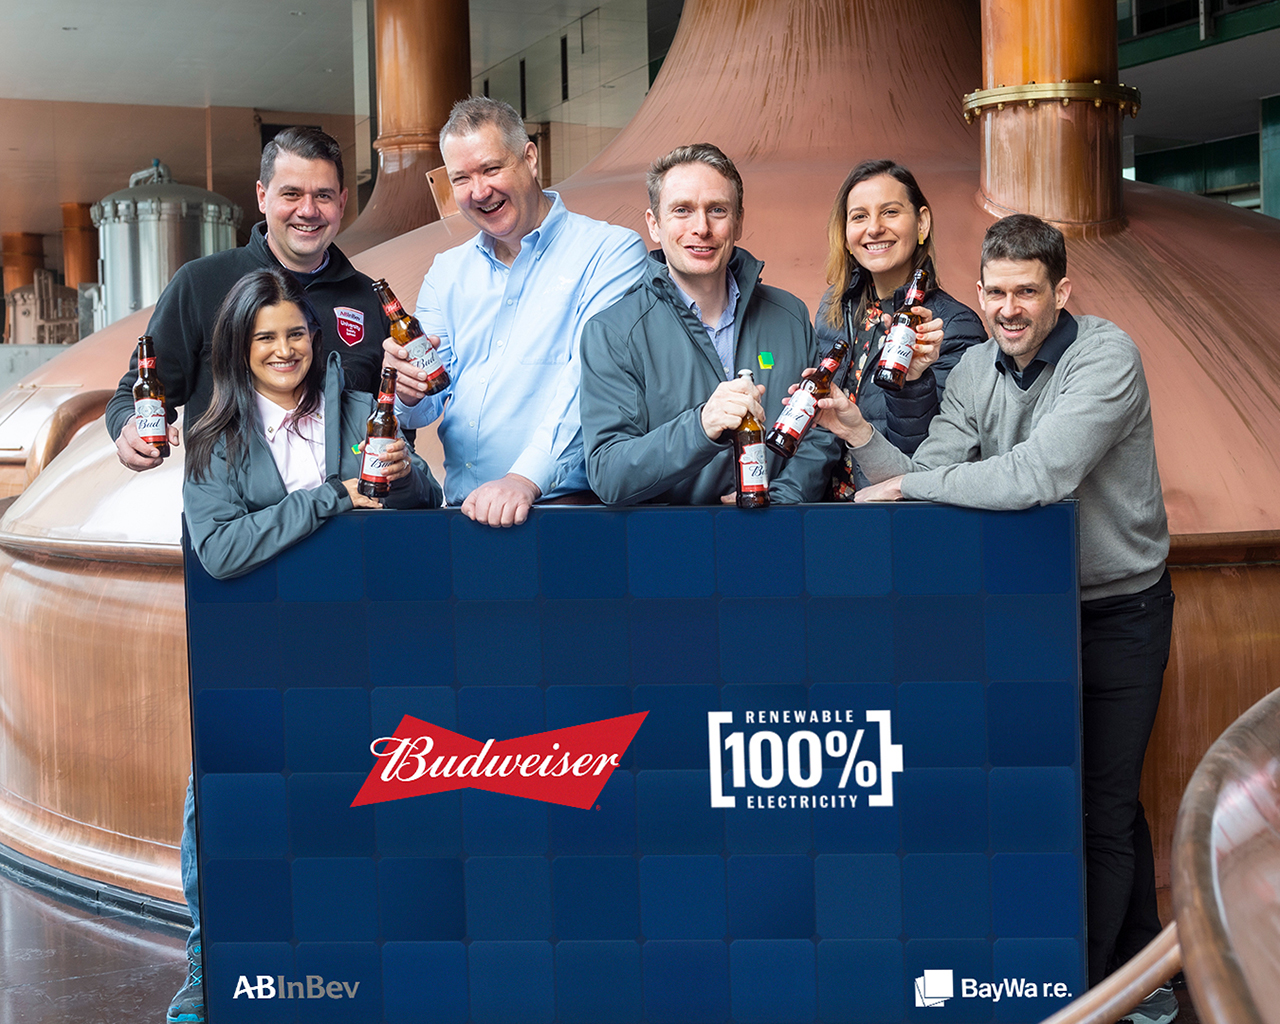 Budweiser 100% Renewable Electricity